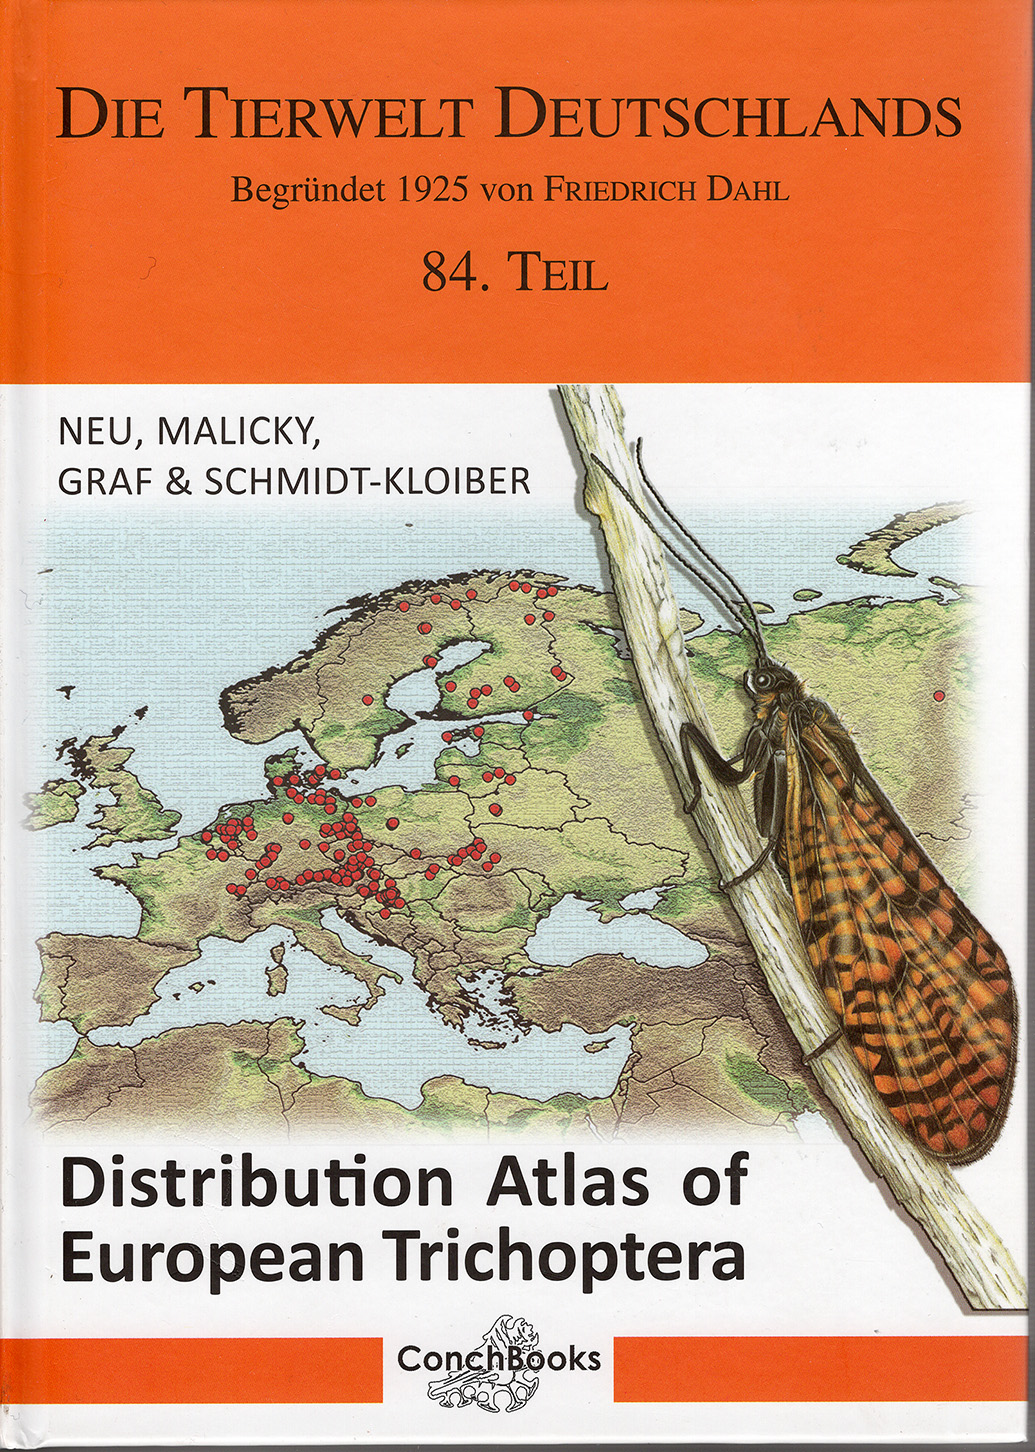 Distribution Atlas of European Trichoptera